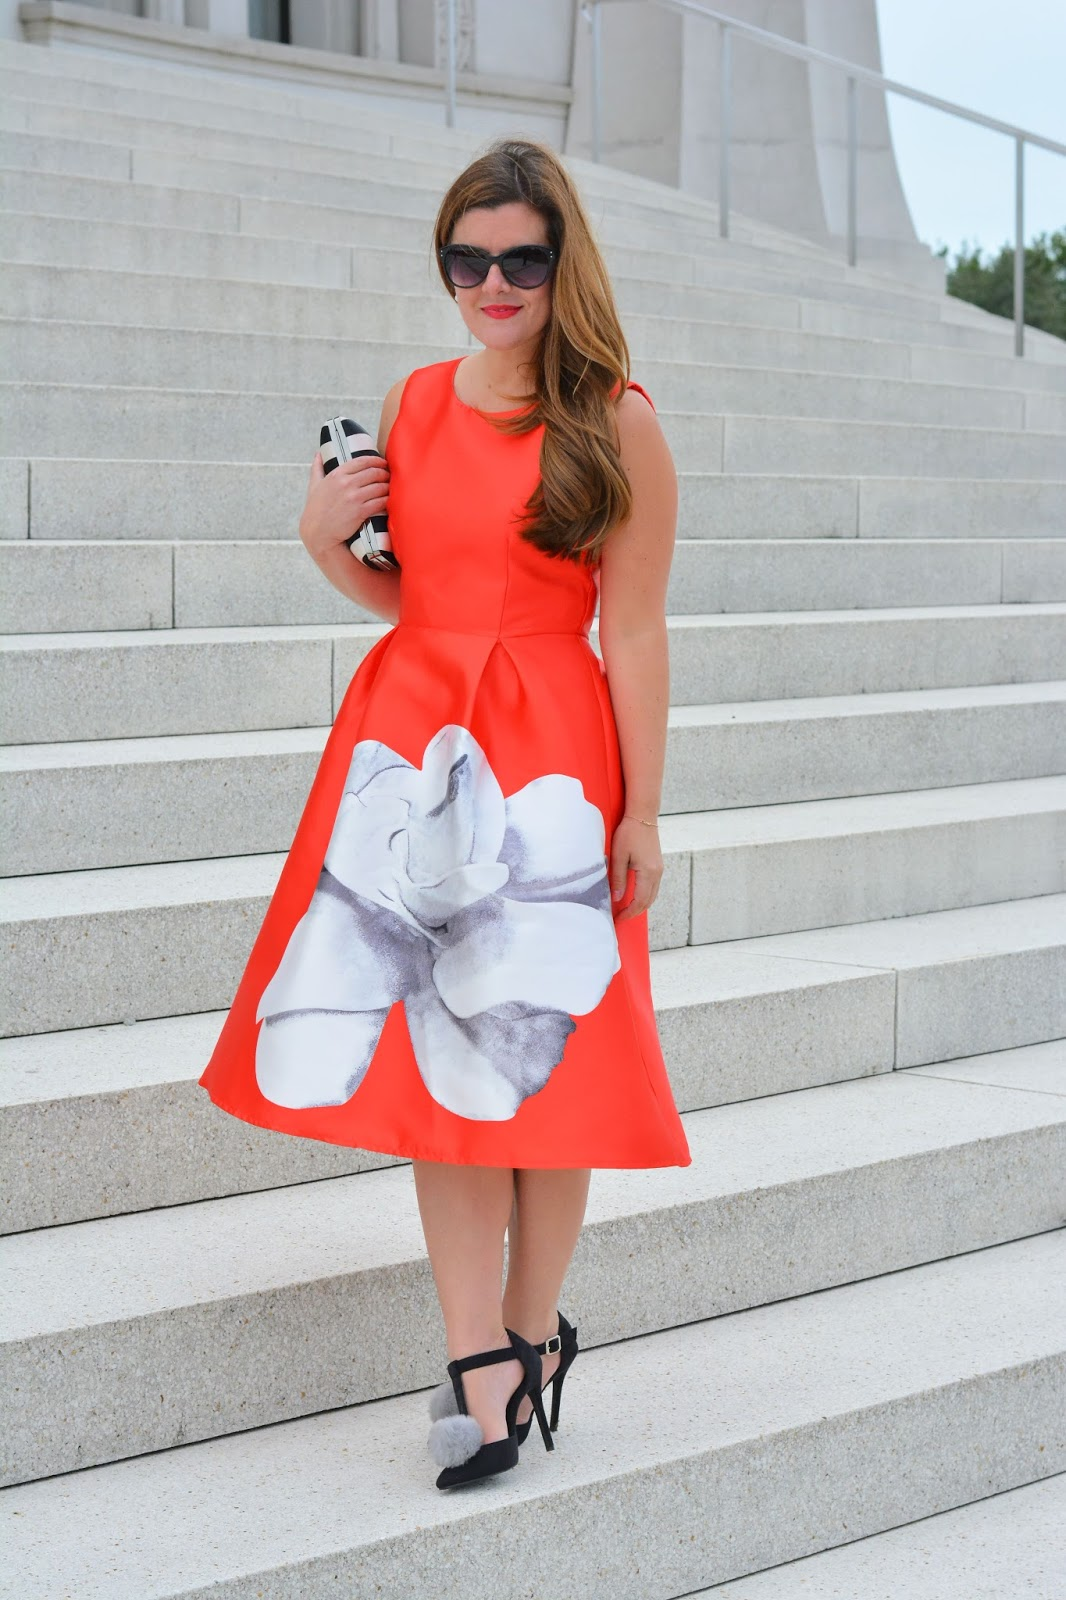 Street style tip of the day: Floral party dress